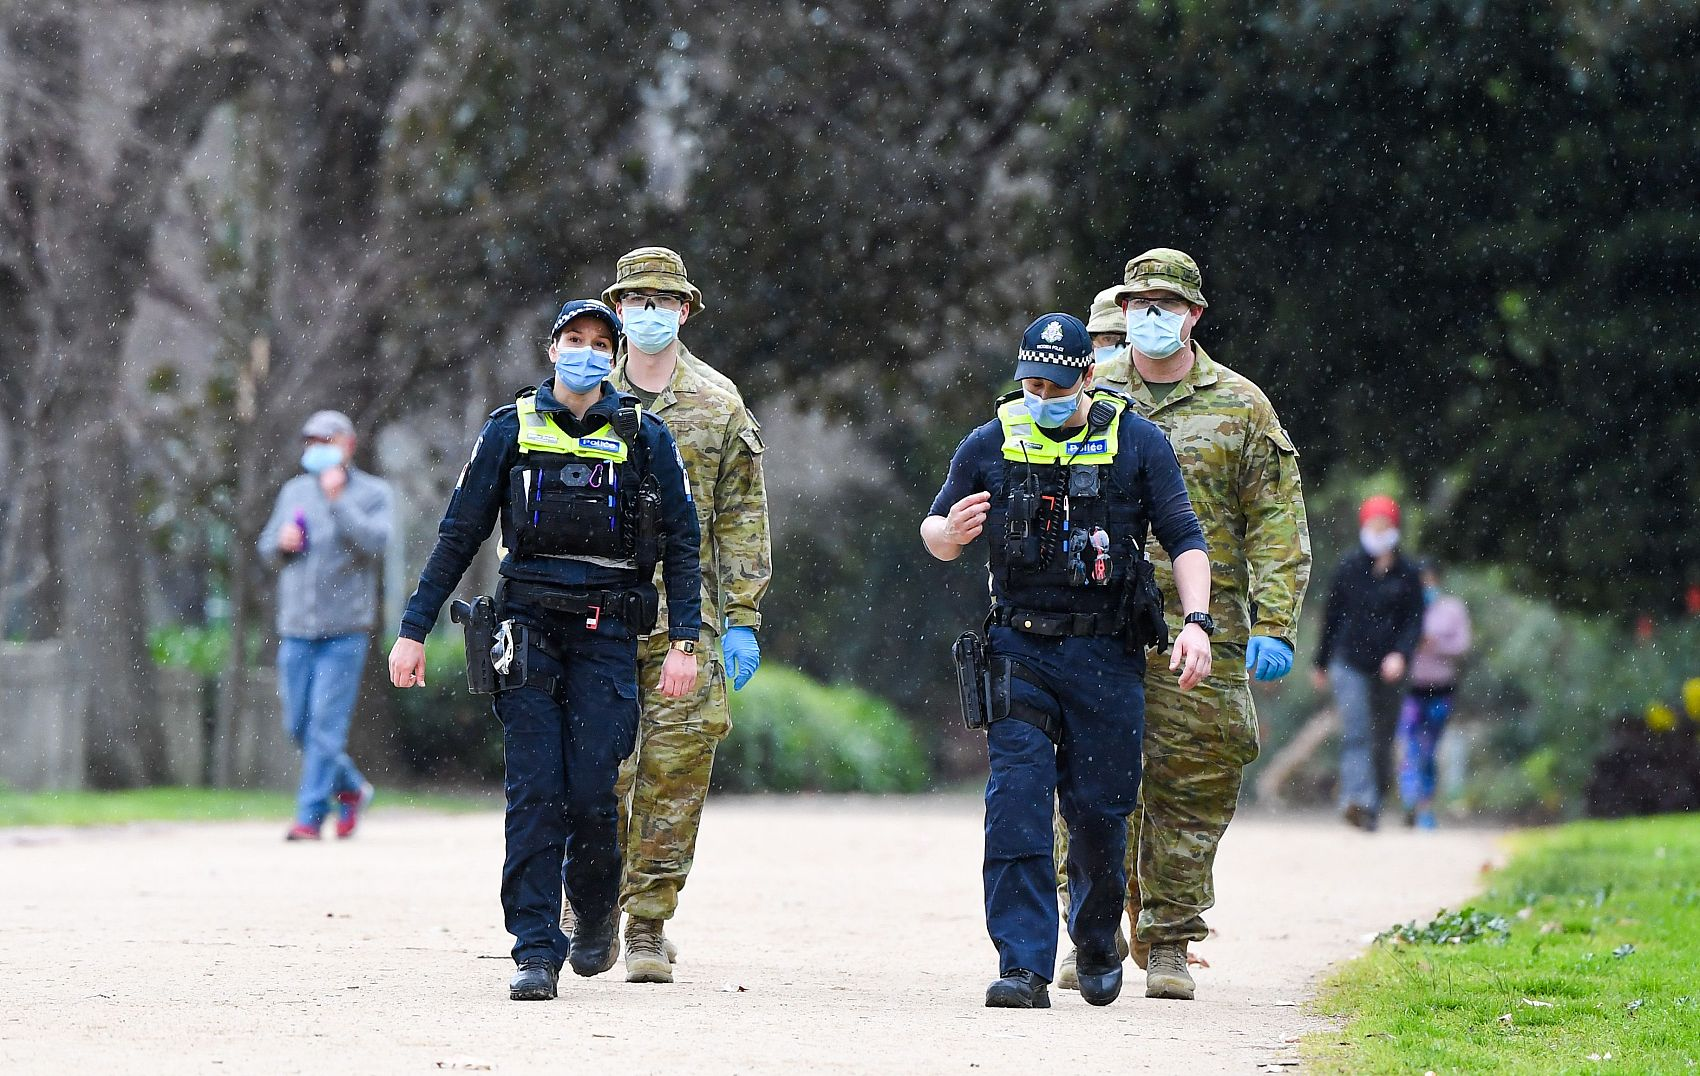 More than 1,000 South Australians quarantined over COVID-19 outbreak fears